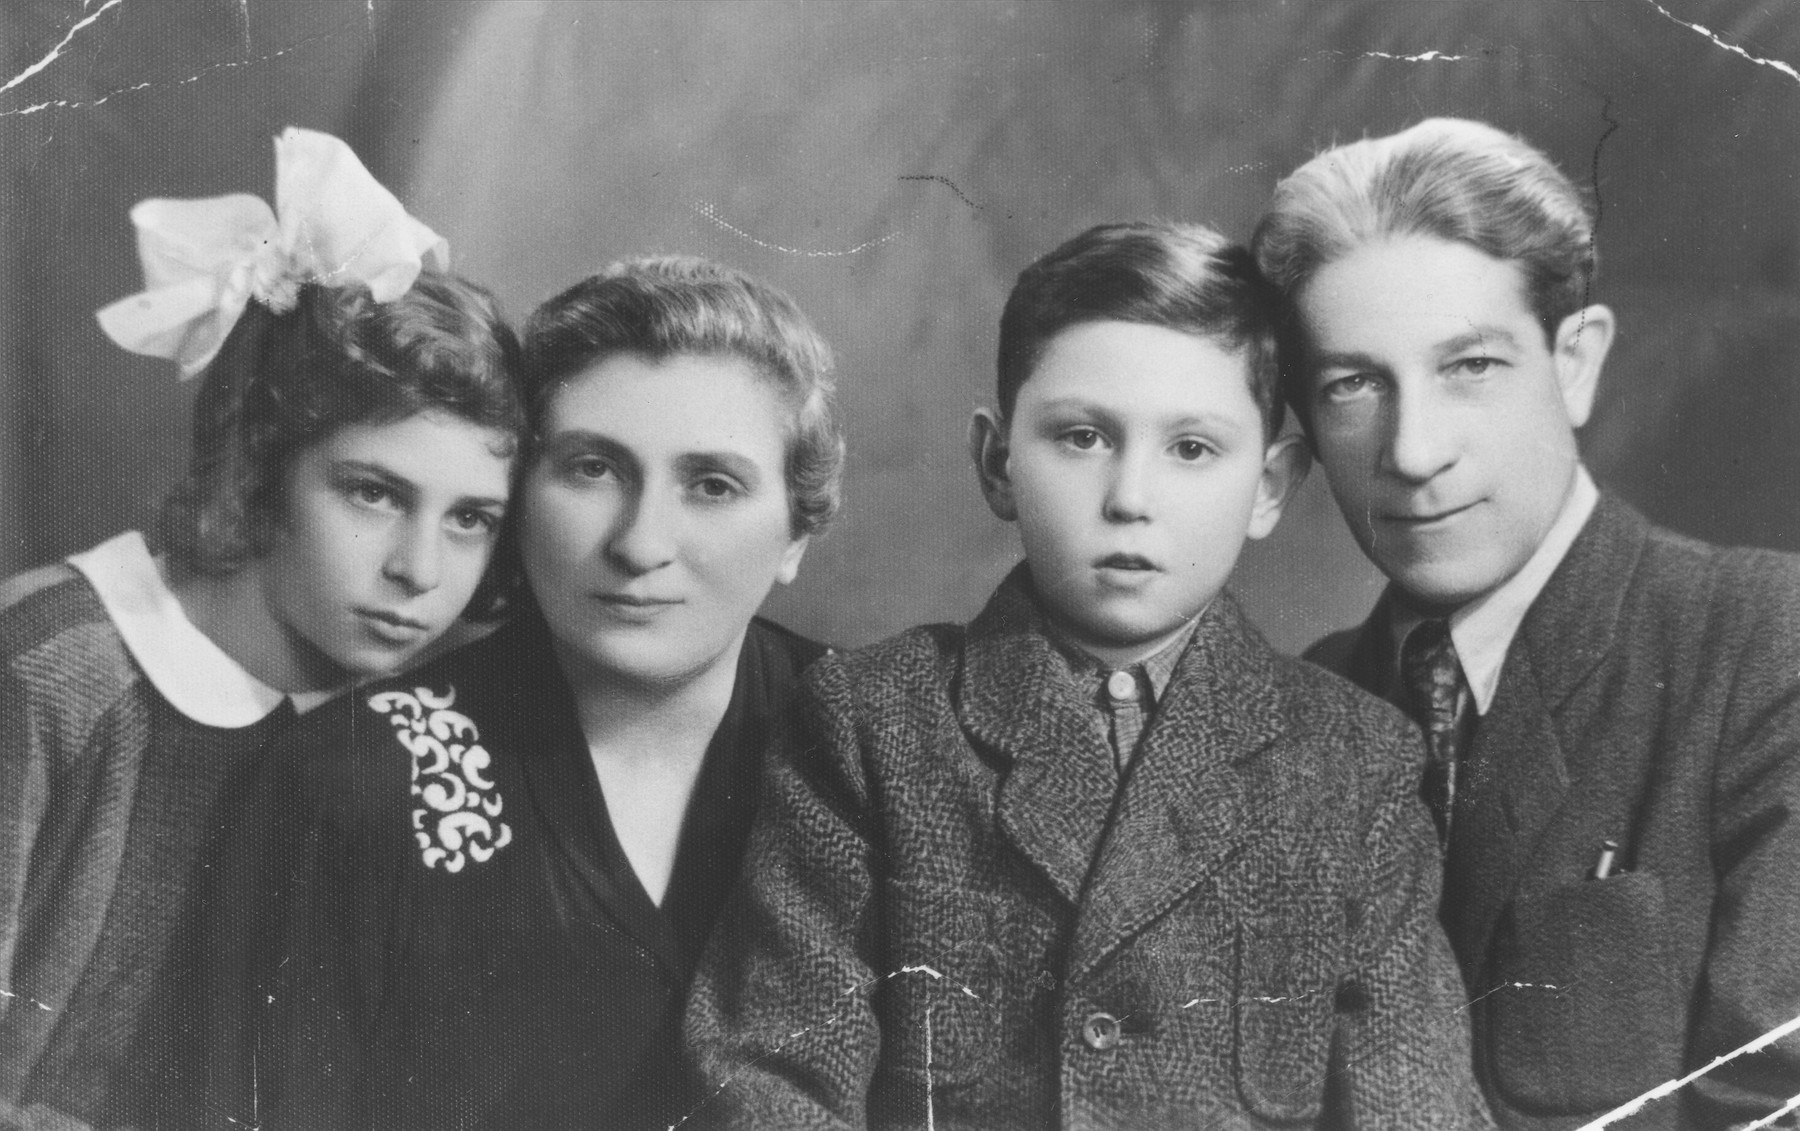 Yona Kunstler (left) poses with her parents and cousin, Gaby, shortly after they were reunited after World War II.